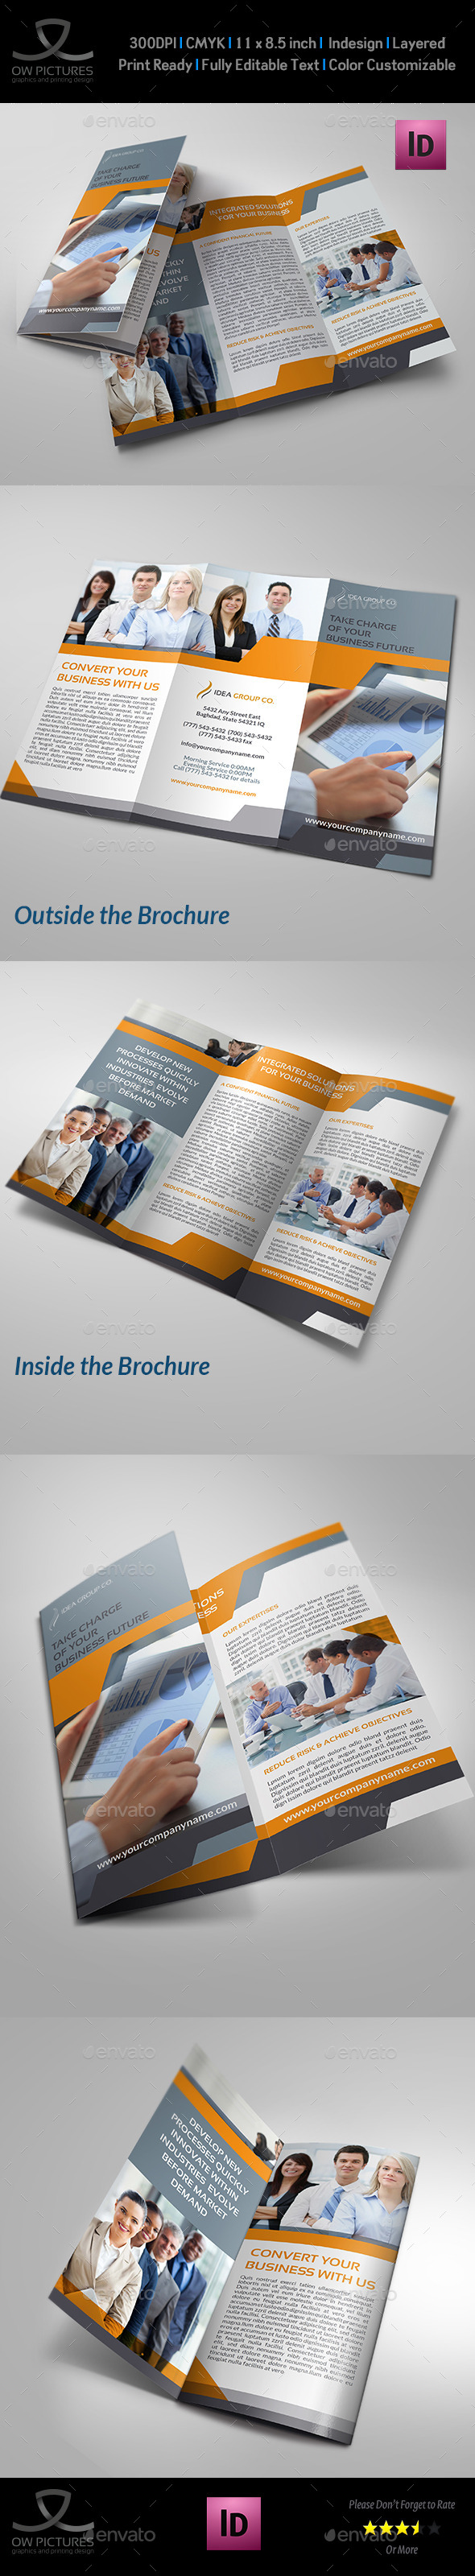 GraphicRiver Company Brochure Tri-Fold Template Vol.16 9165799